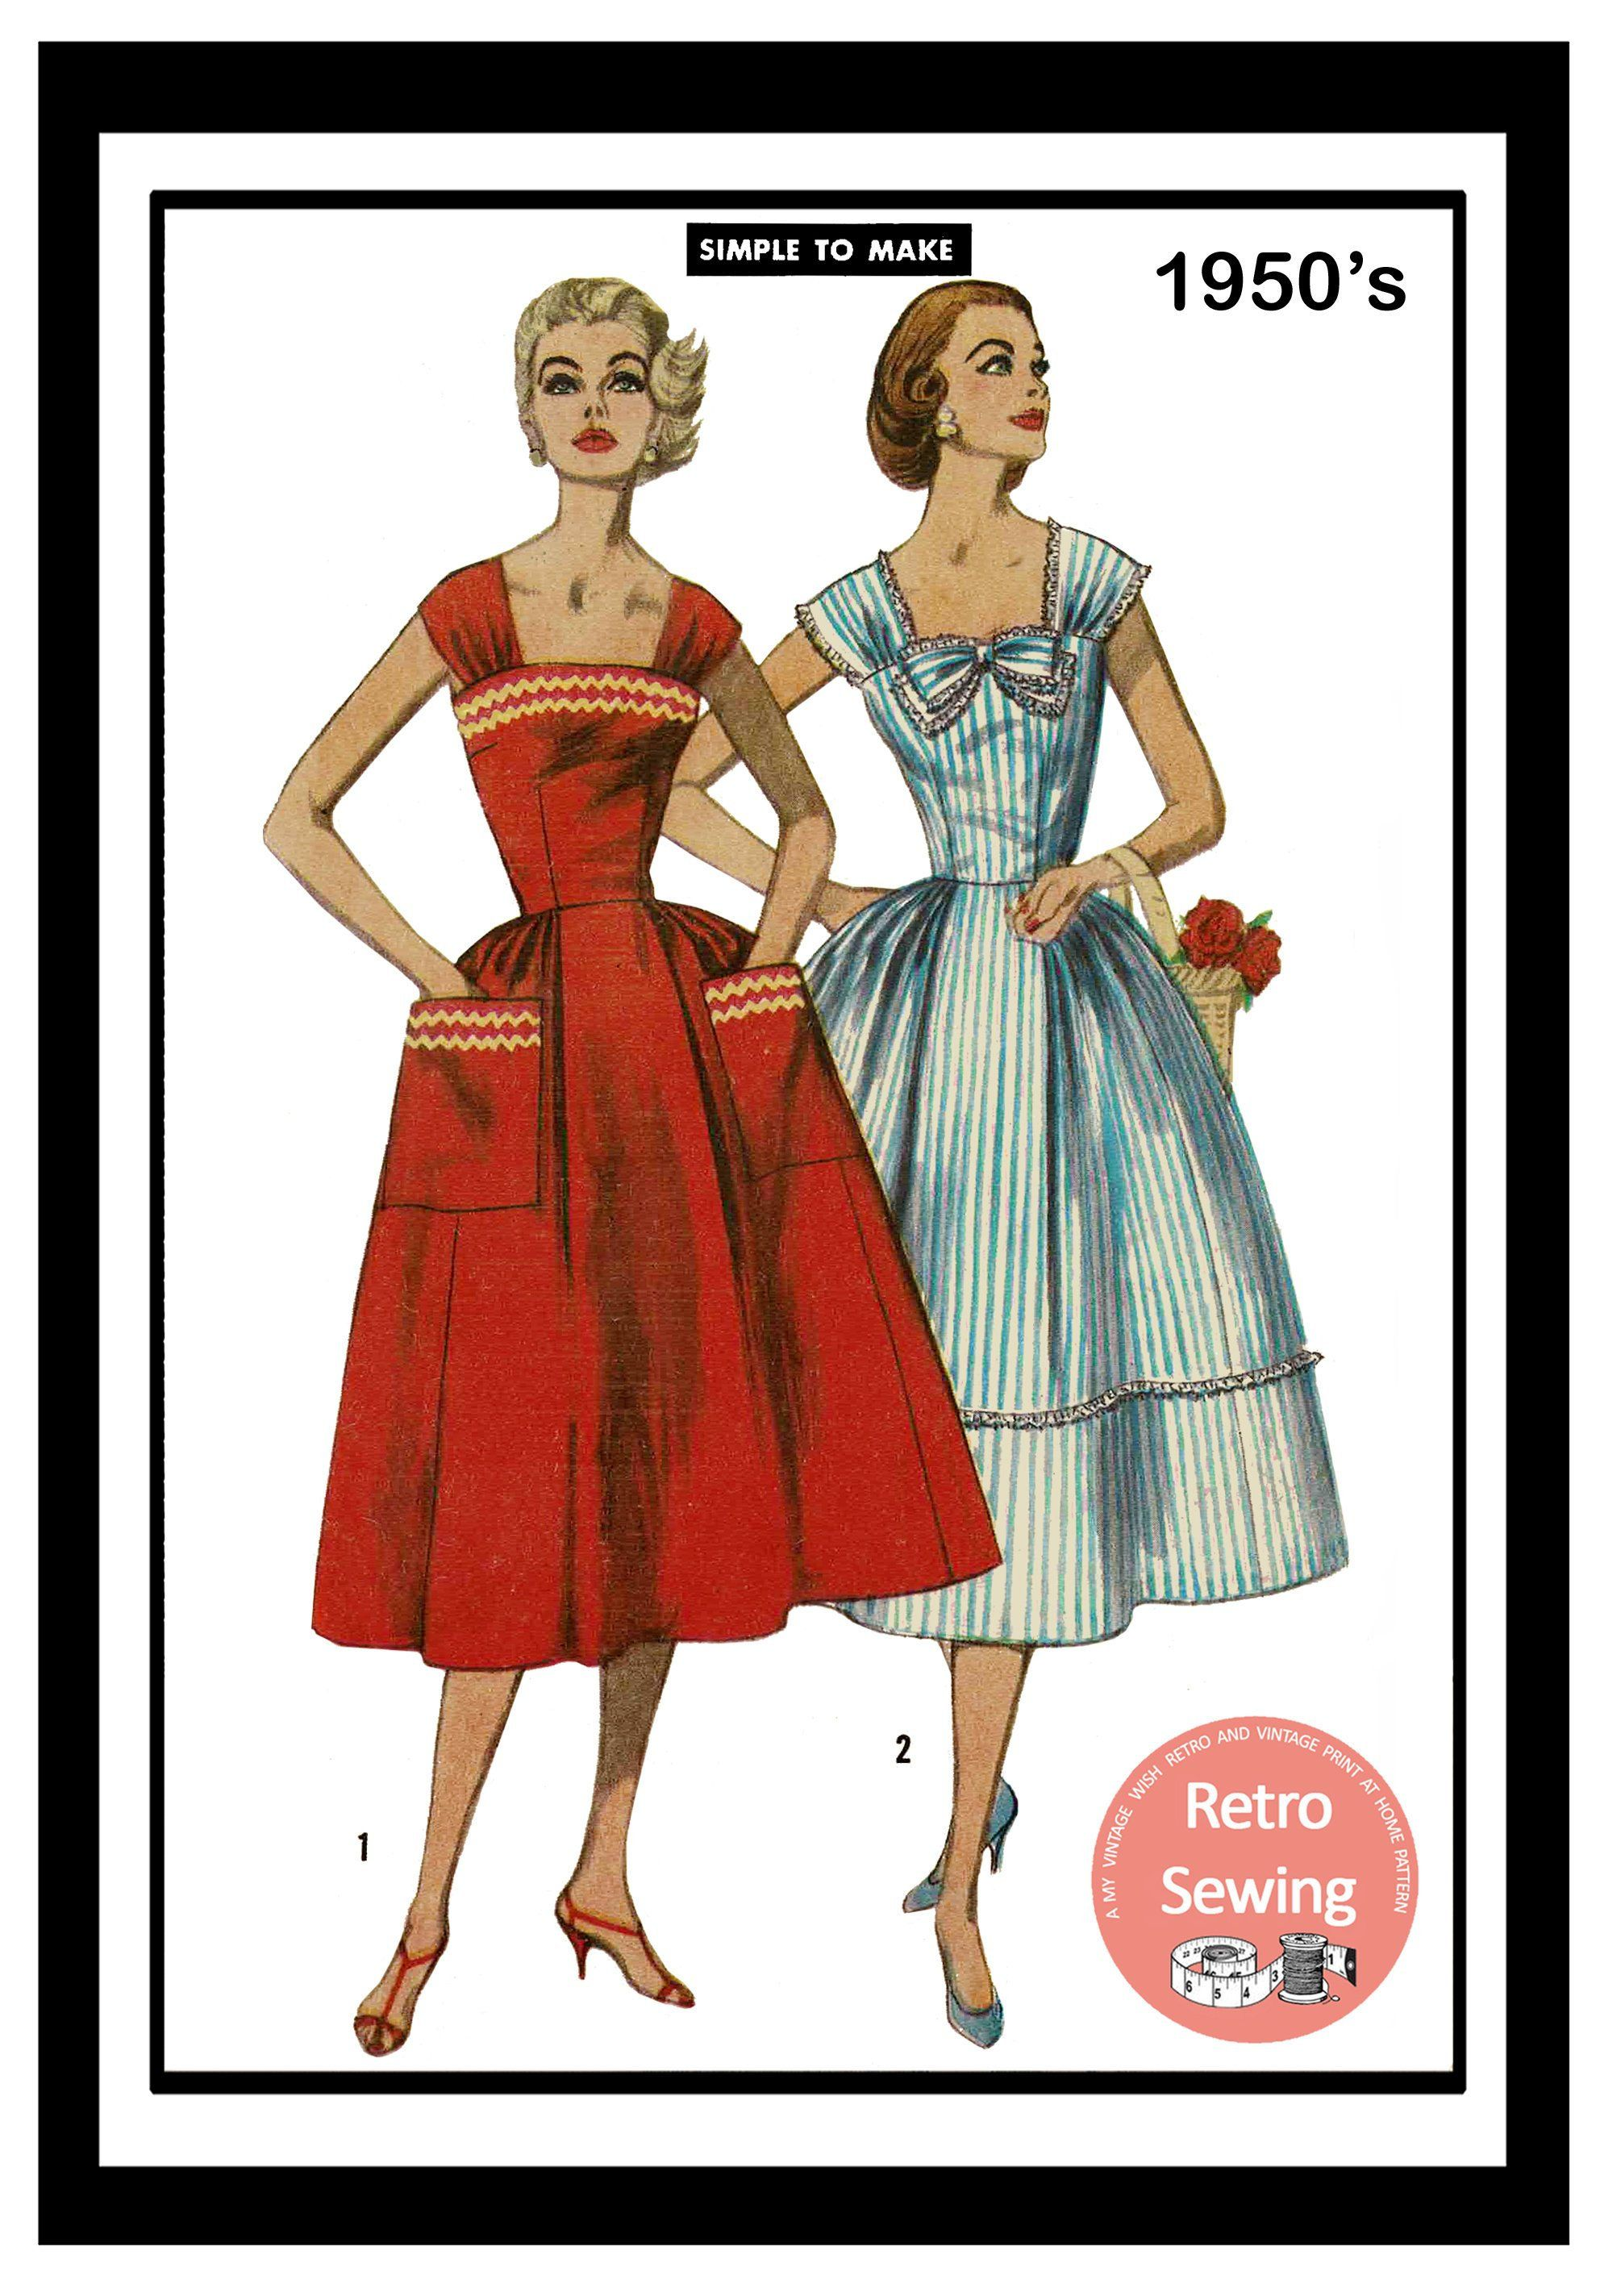 1950s Summer Dress With Pockets Sewing Pattern Pdf Instant Etsy Evening Dress Sewing Patterns Summer Dresses Sewing Patterns [ 2847 x 1984 Pixel ]